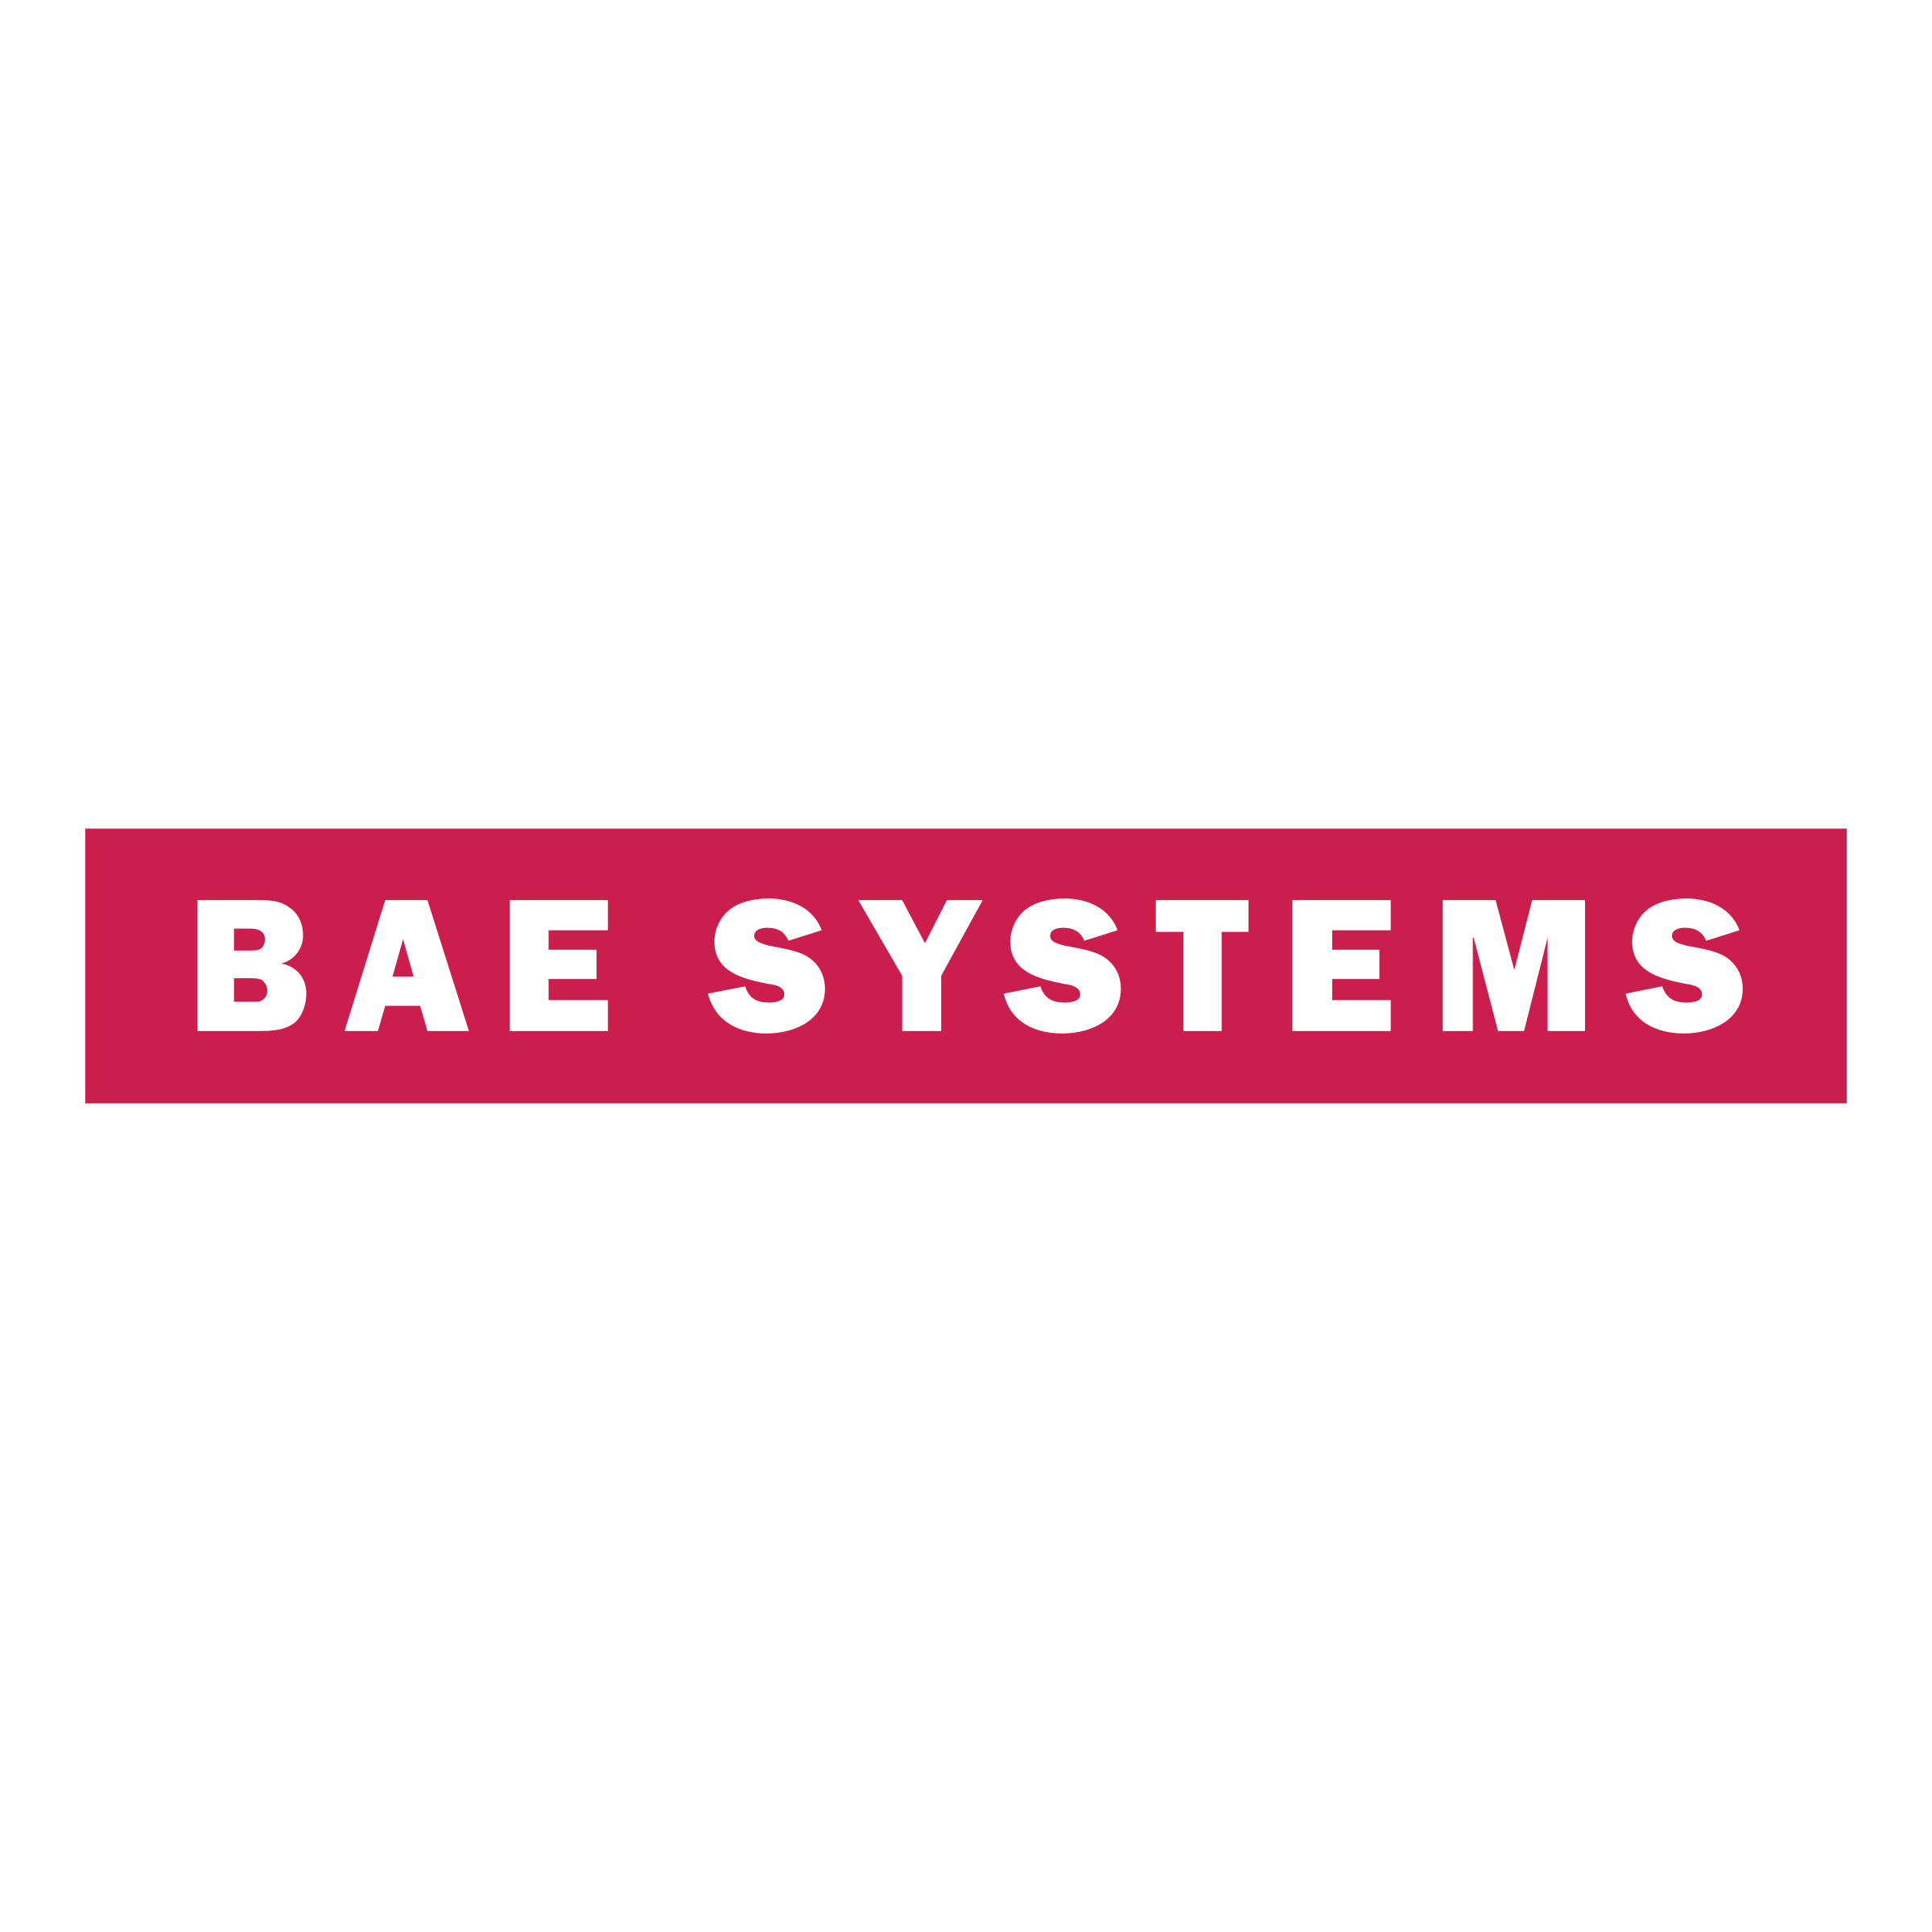 bae-systems-logo-png-transparent